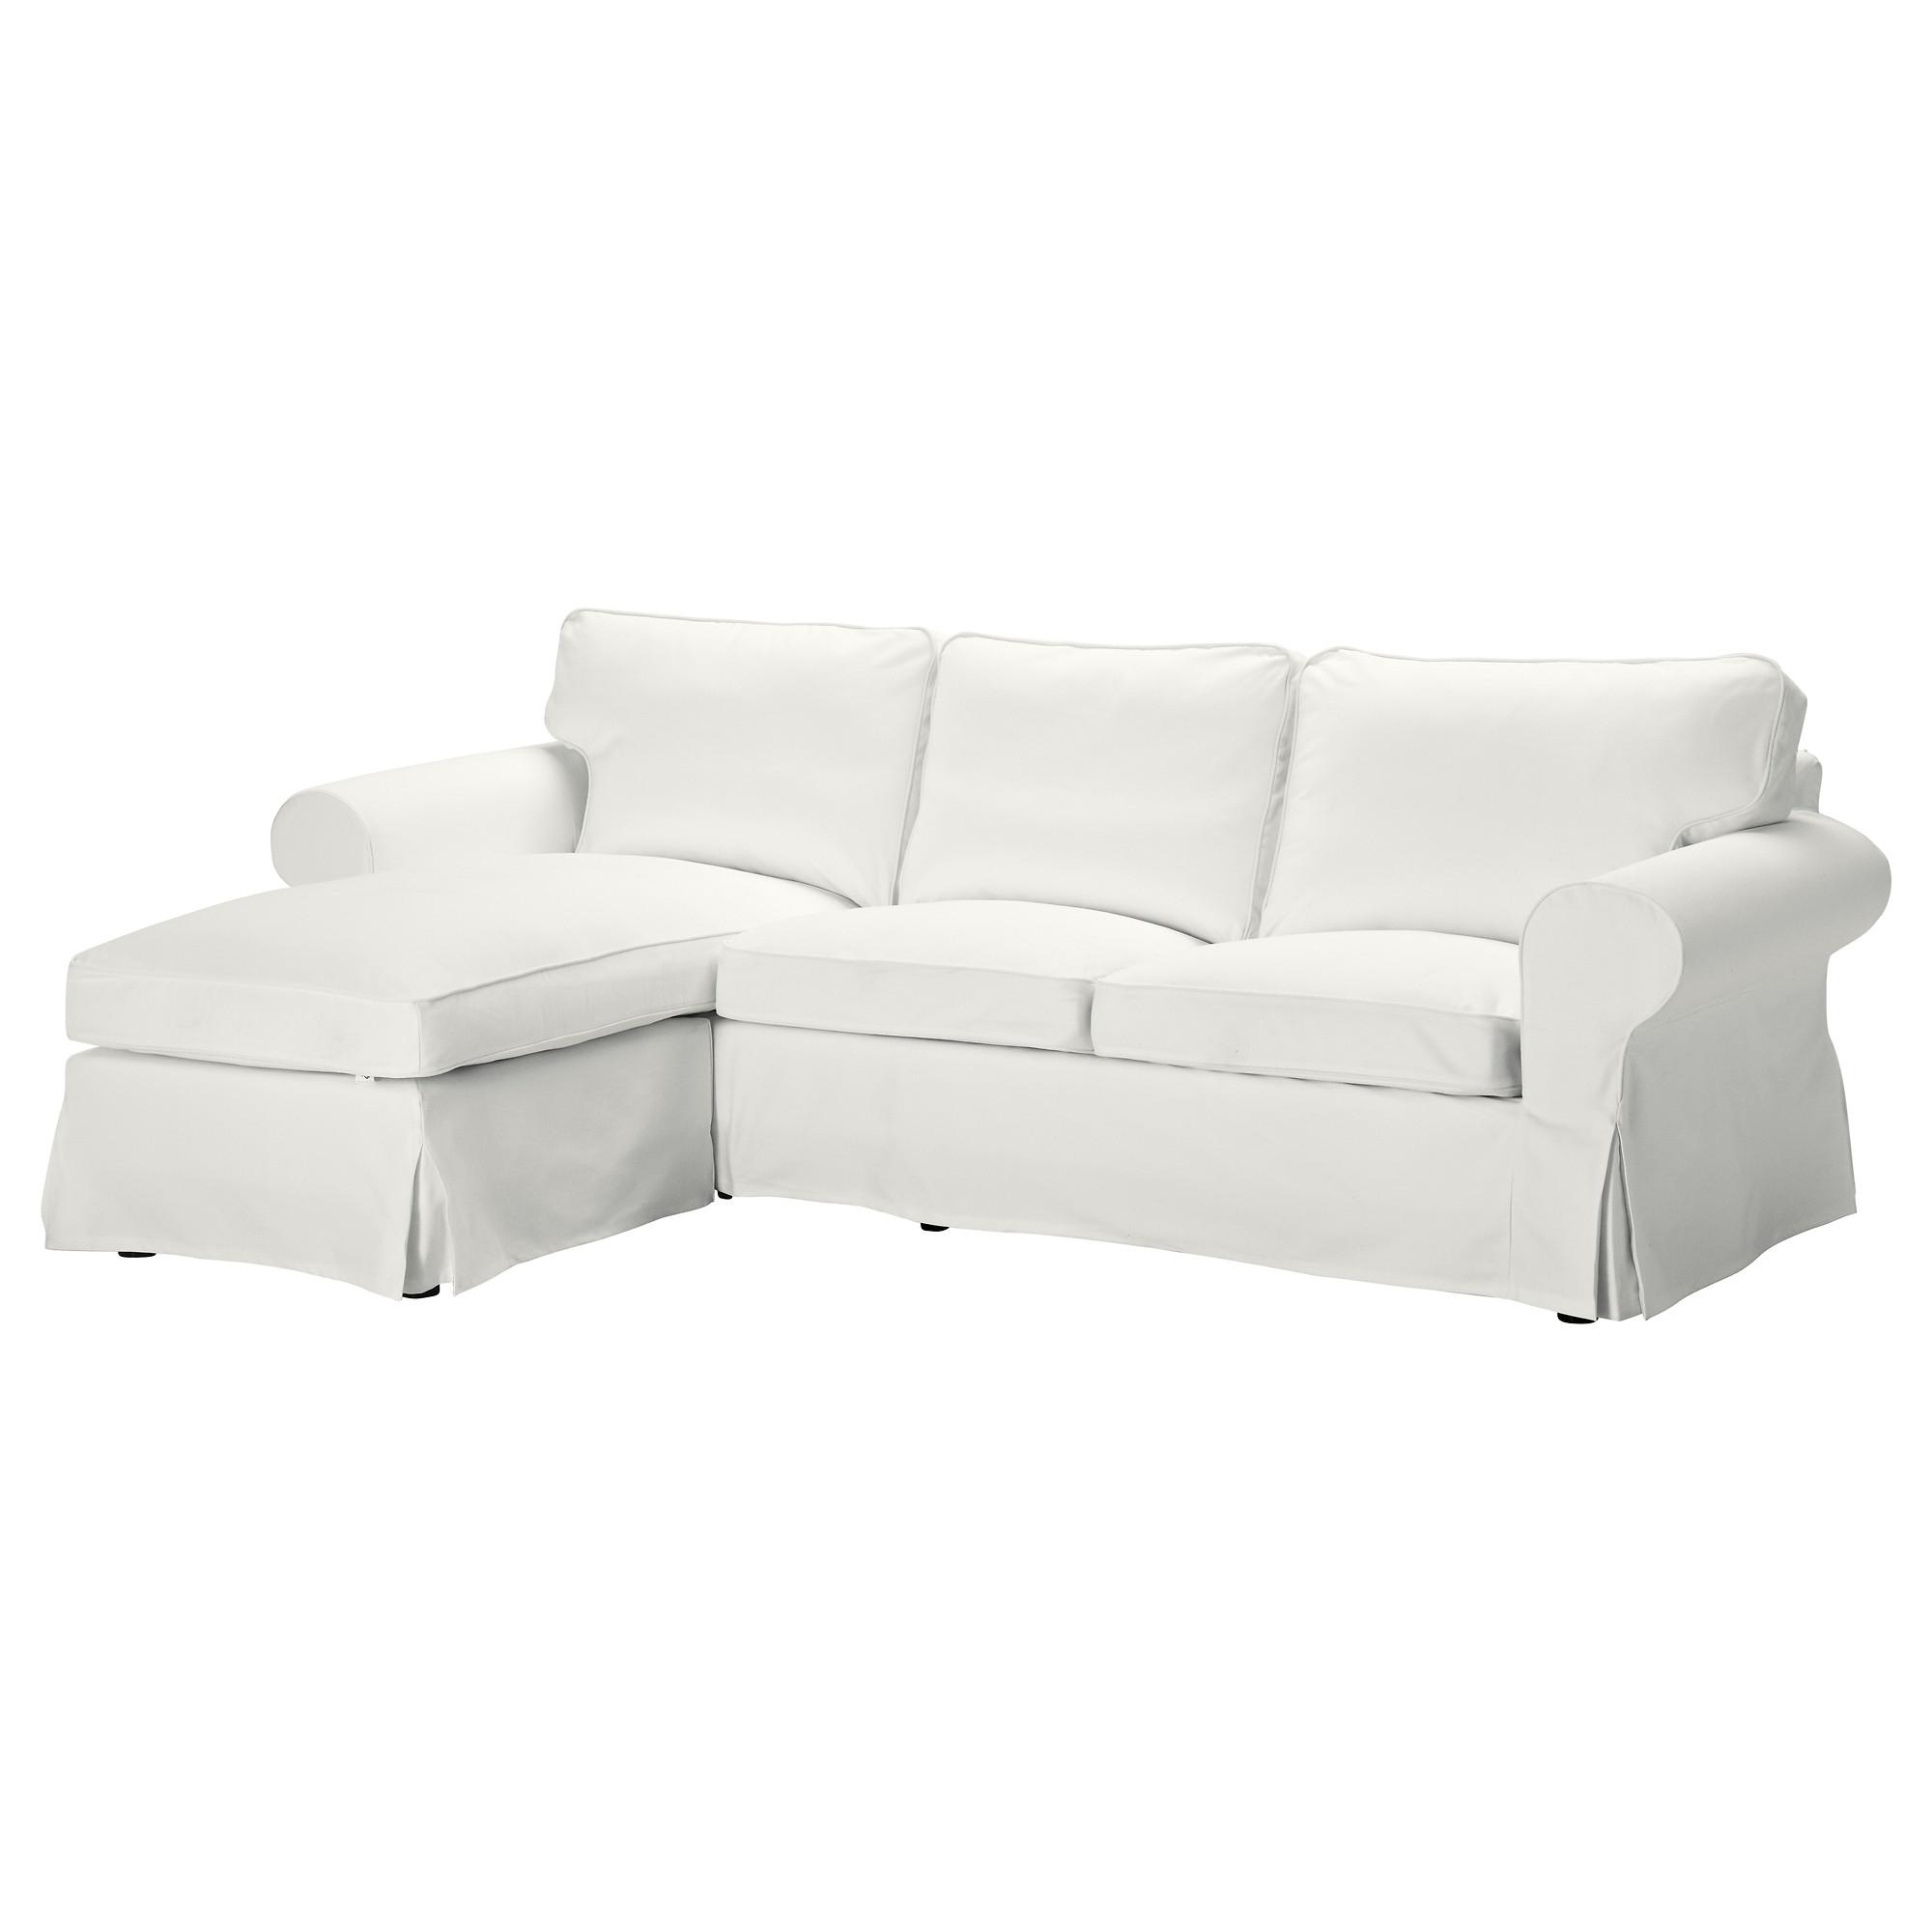 Ektorp 3 Seat Sofa With Chaise Longue/blekinge White – Ikea For Ikea Chaise Lounge Sofa (Image 4 of 20)